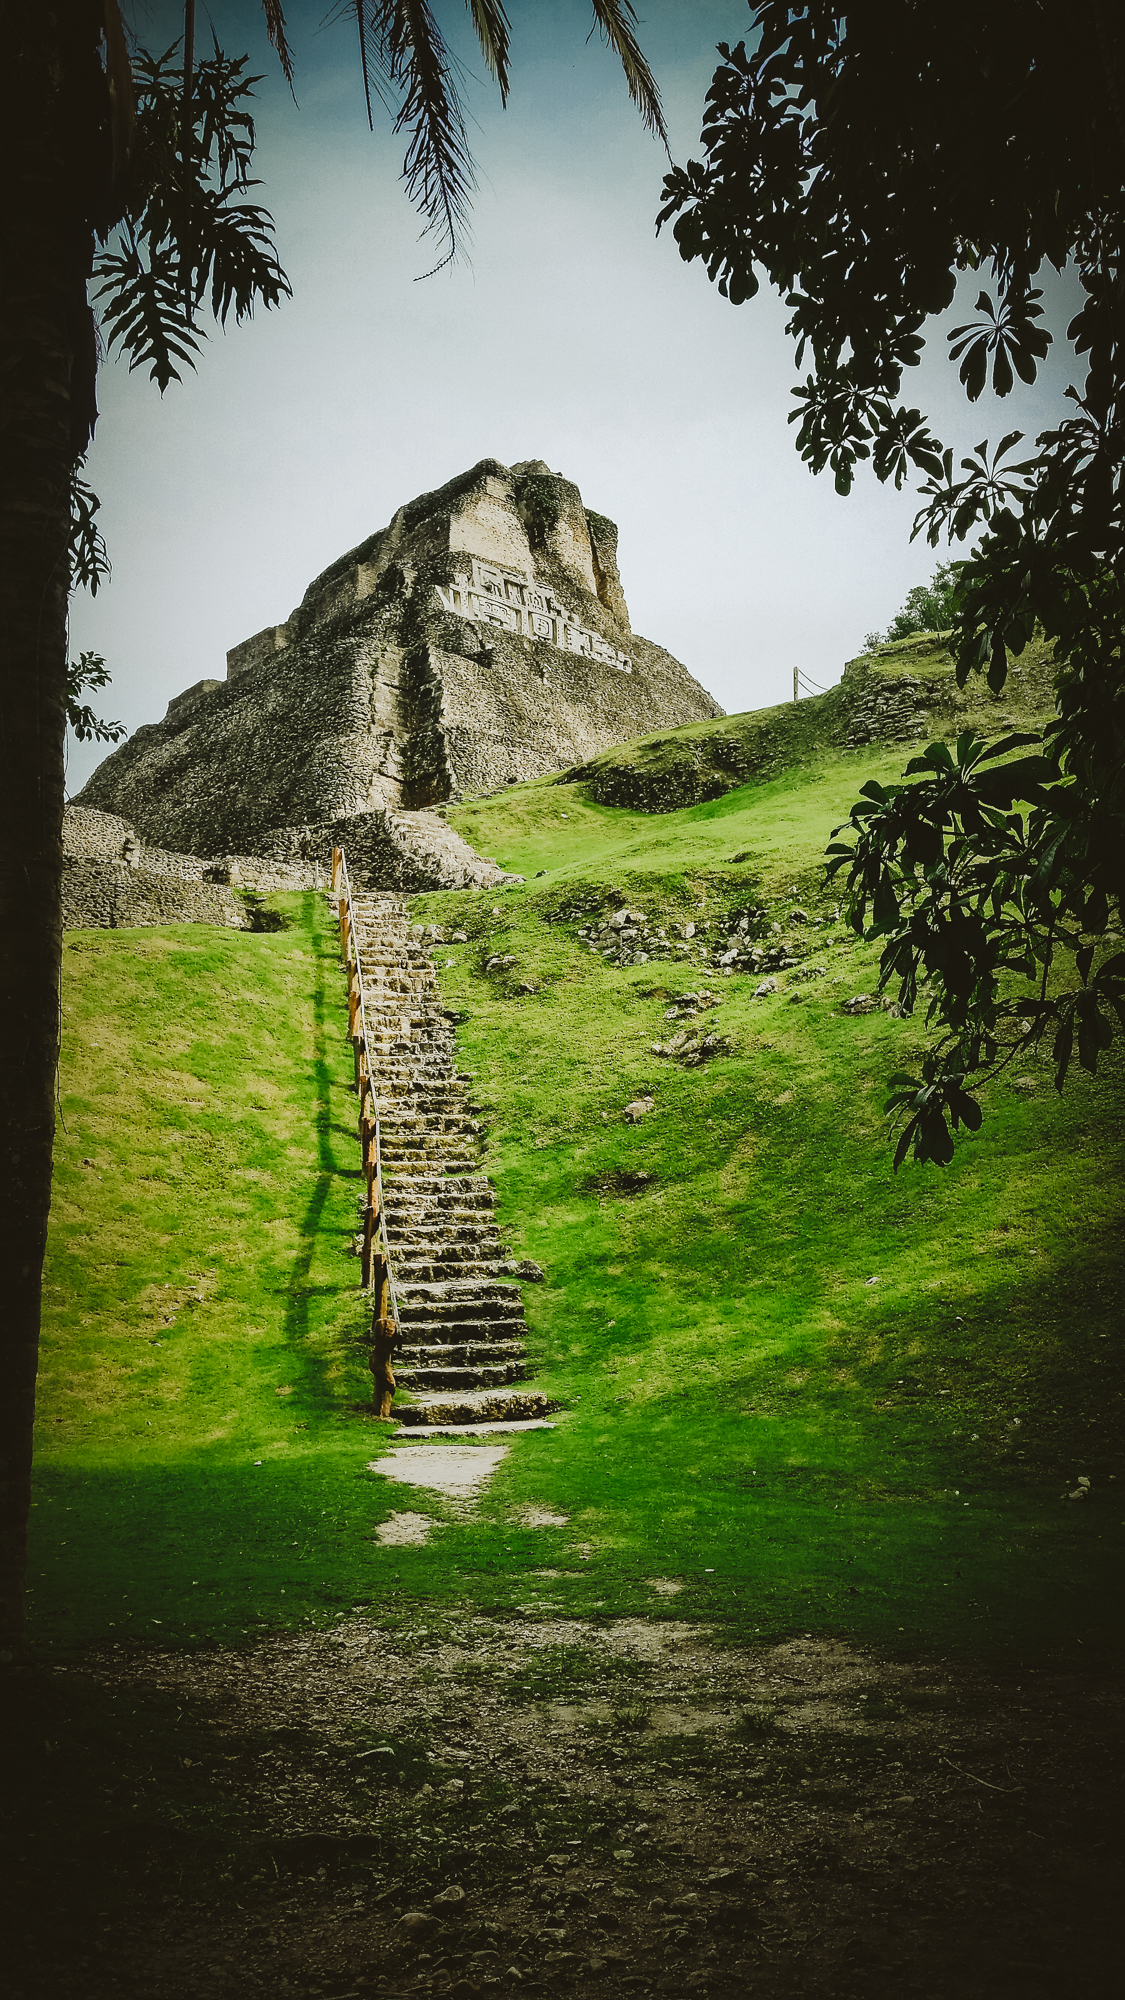 Looking up to the ruins at Xunantunich.